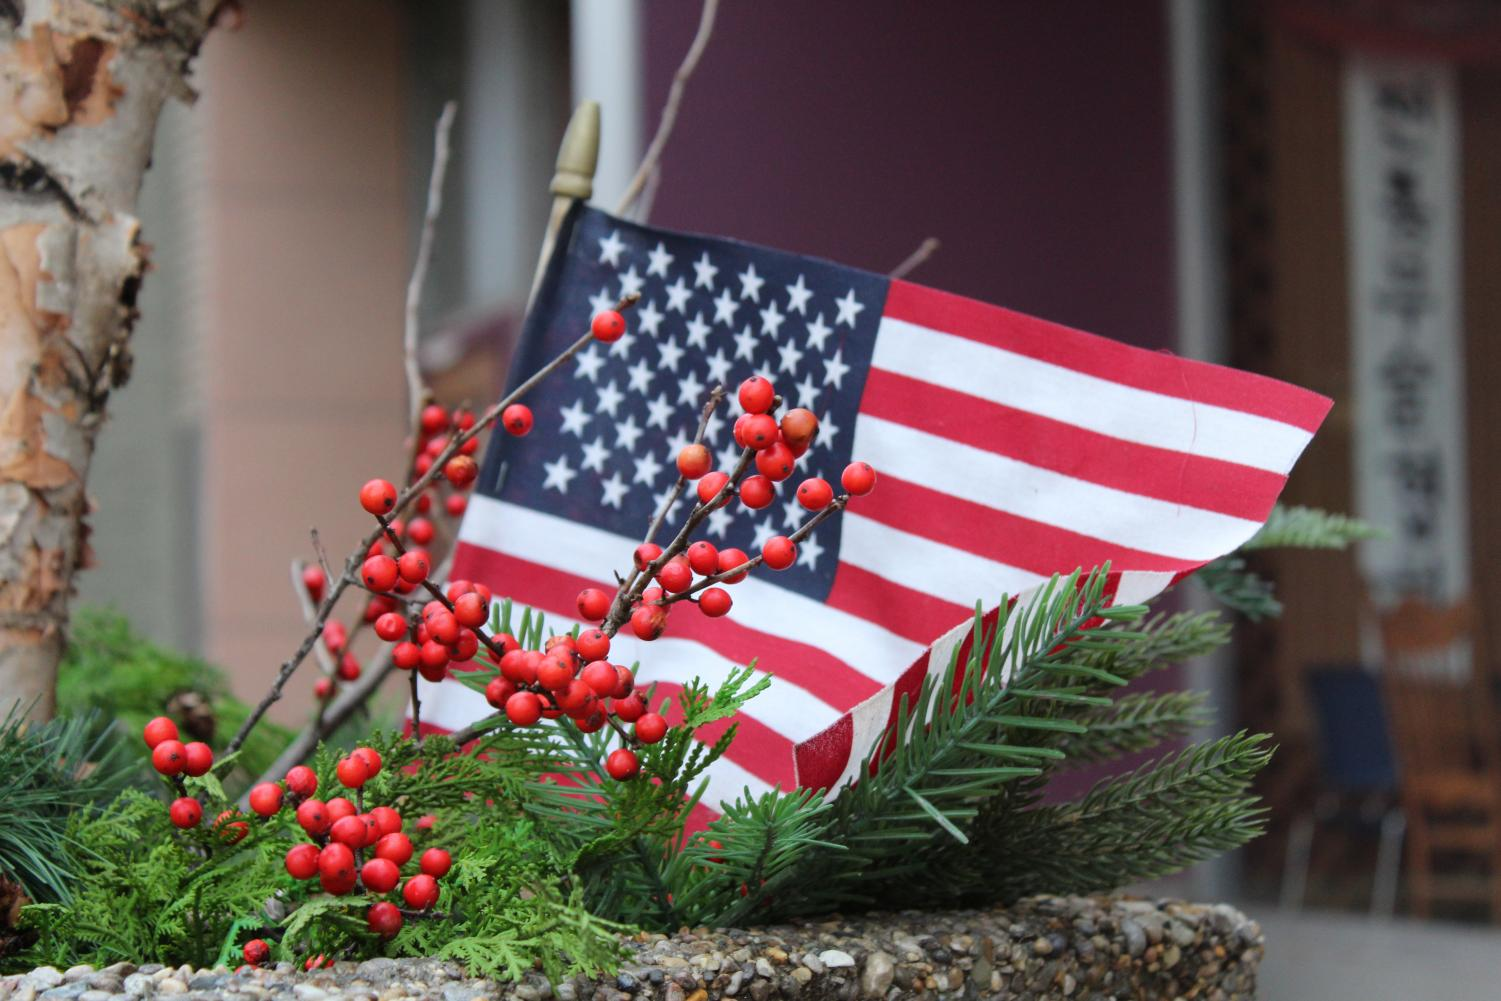 Businesses throughout downtown Vincennes have added colorful displays this holiday season.